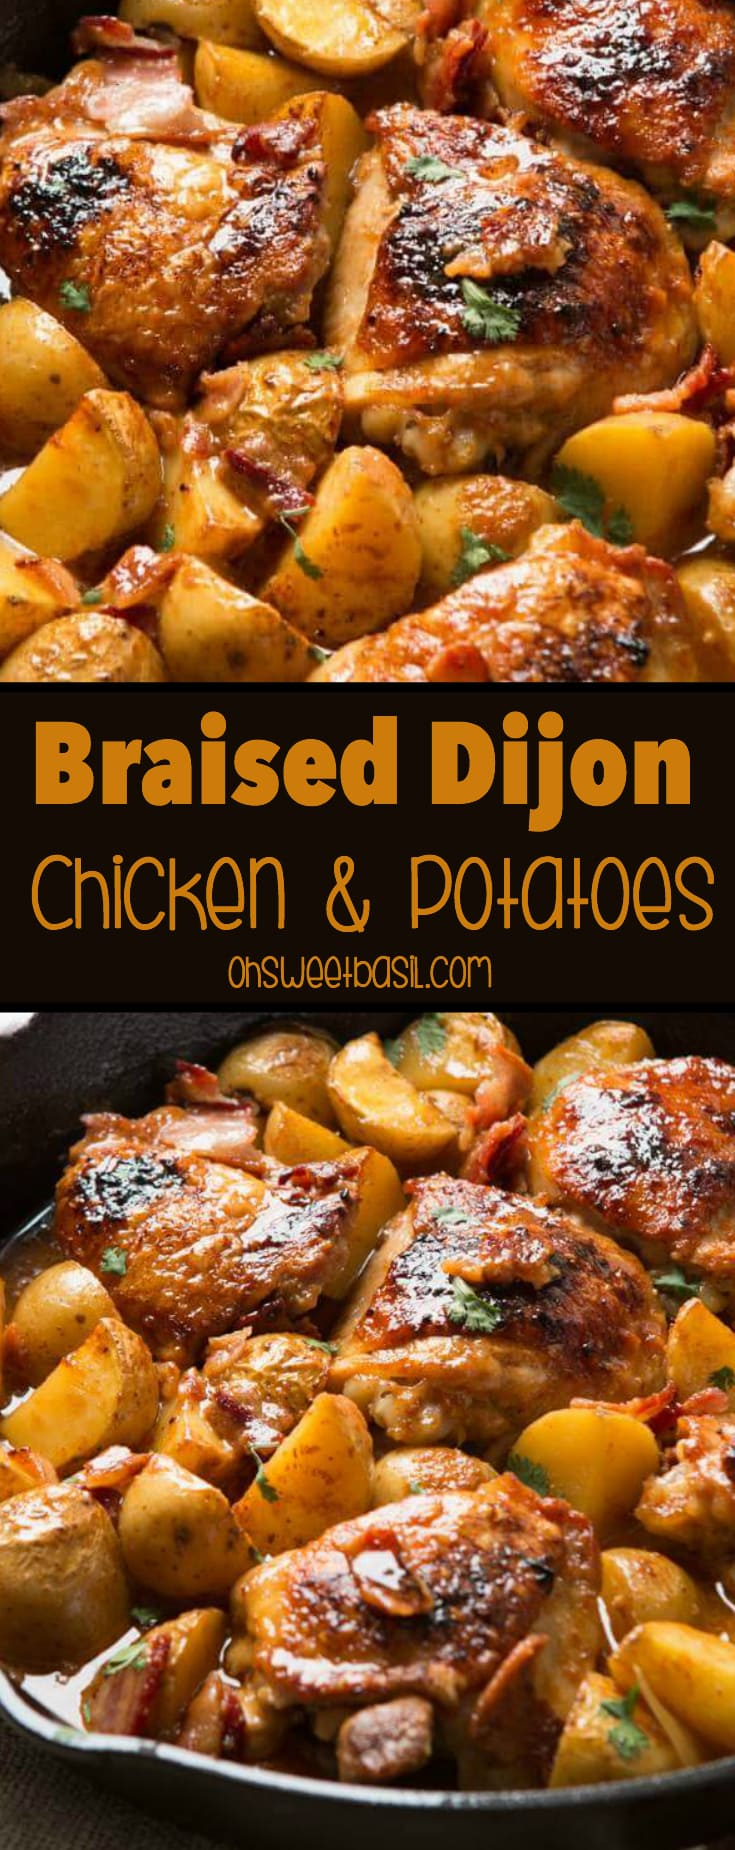 Hands down, our absolute most favorite recipe ever is this juicy, saucy dijon braised chicken thighs with potatoes that's a one-skillet wonder!